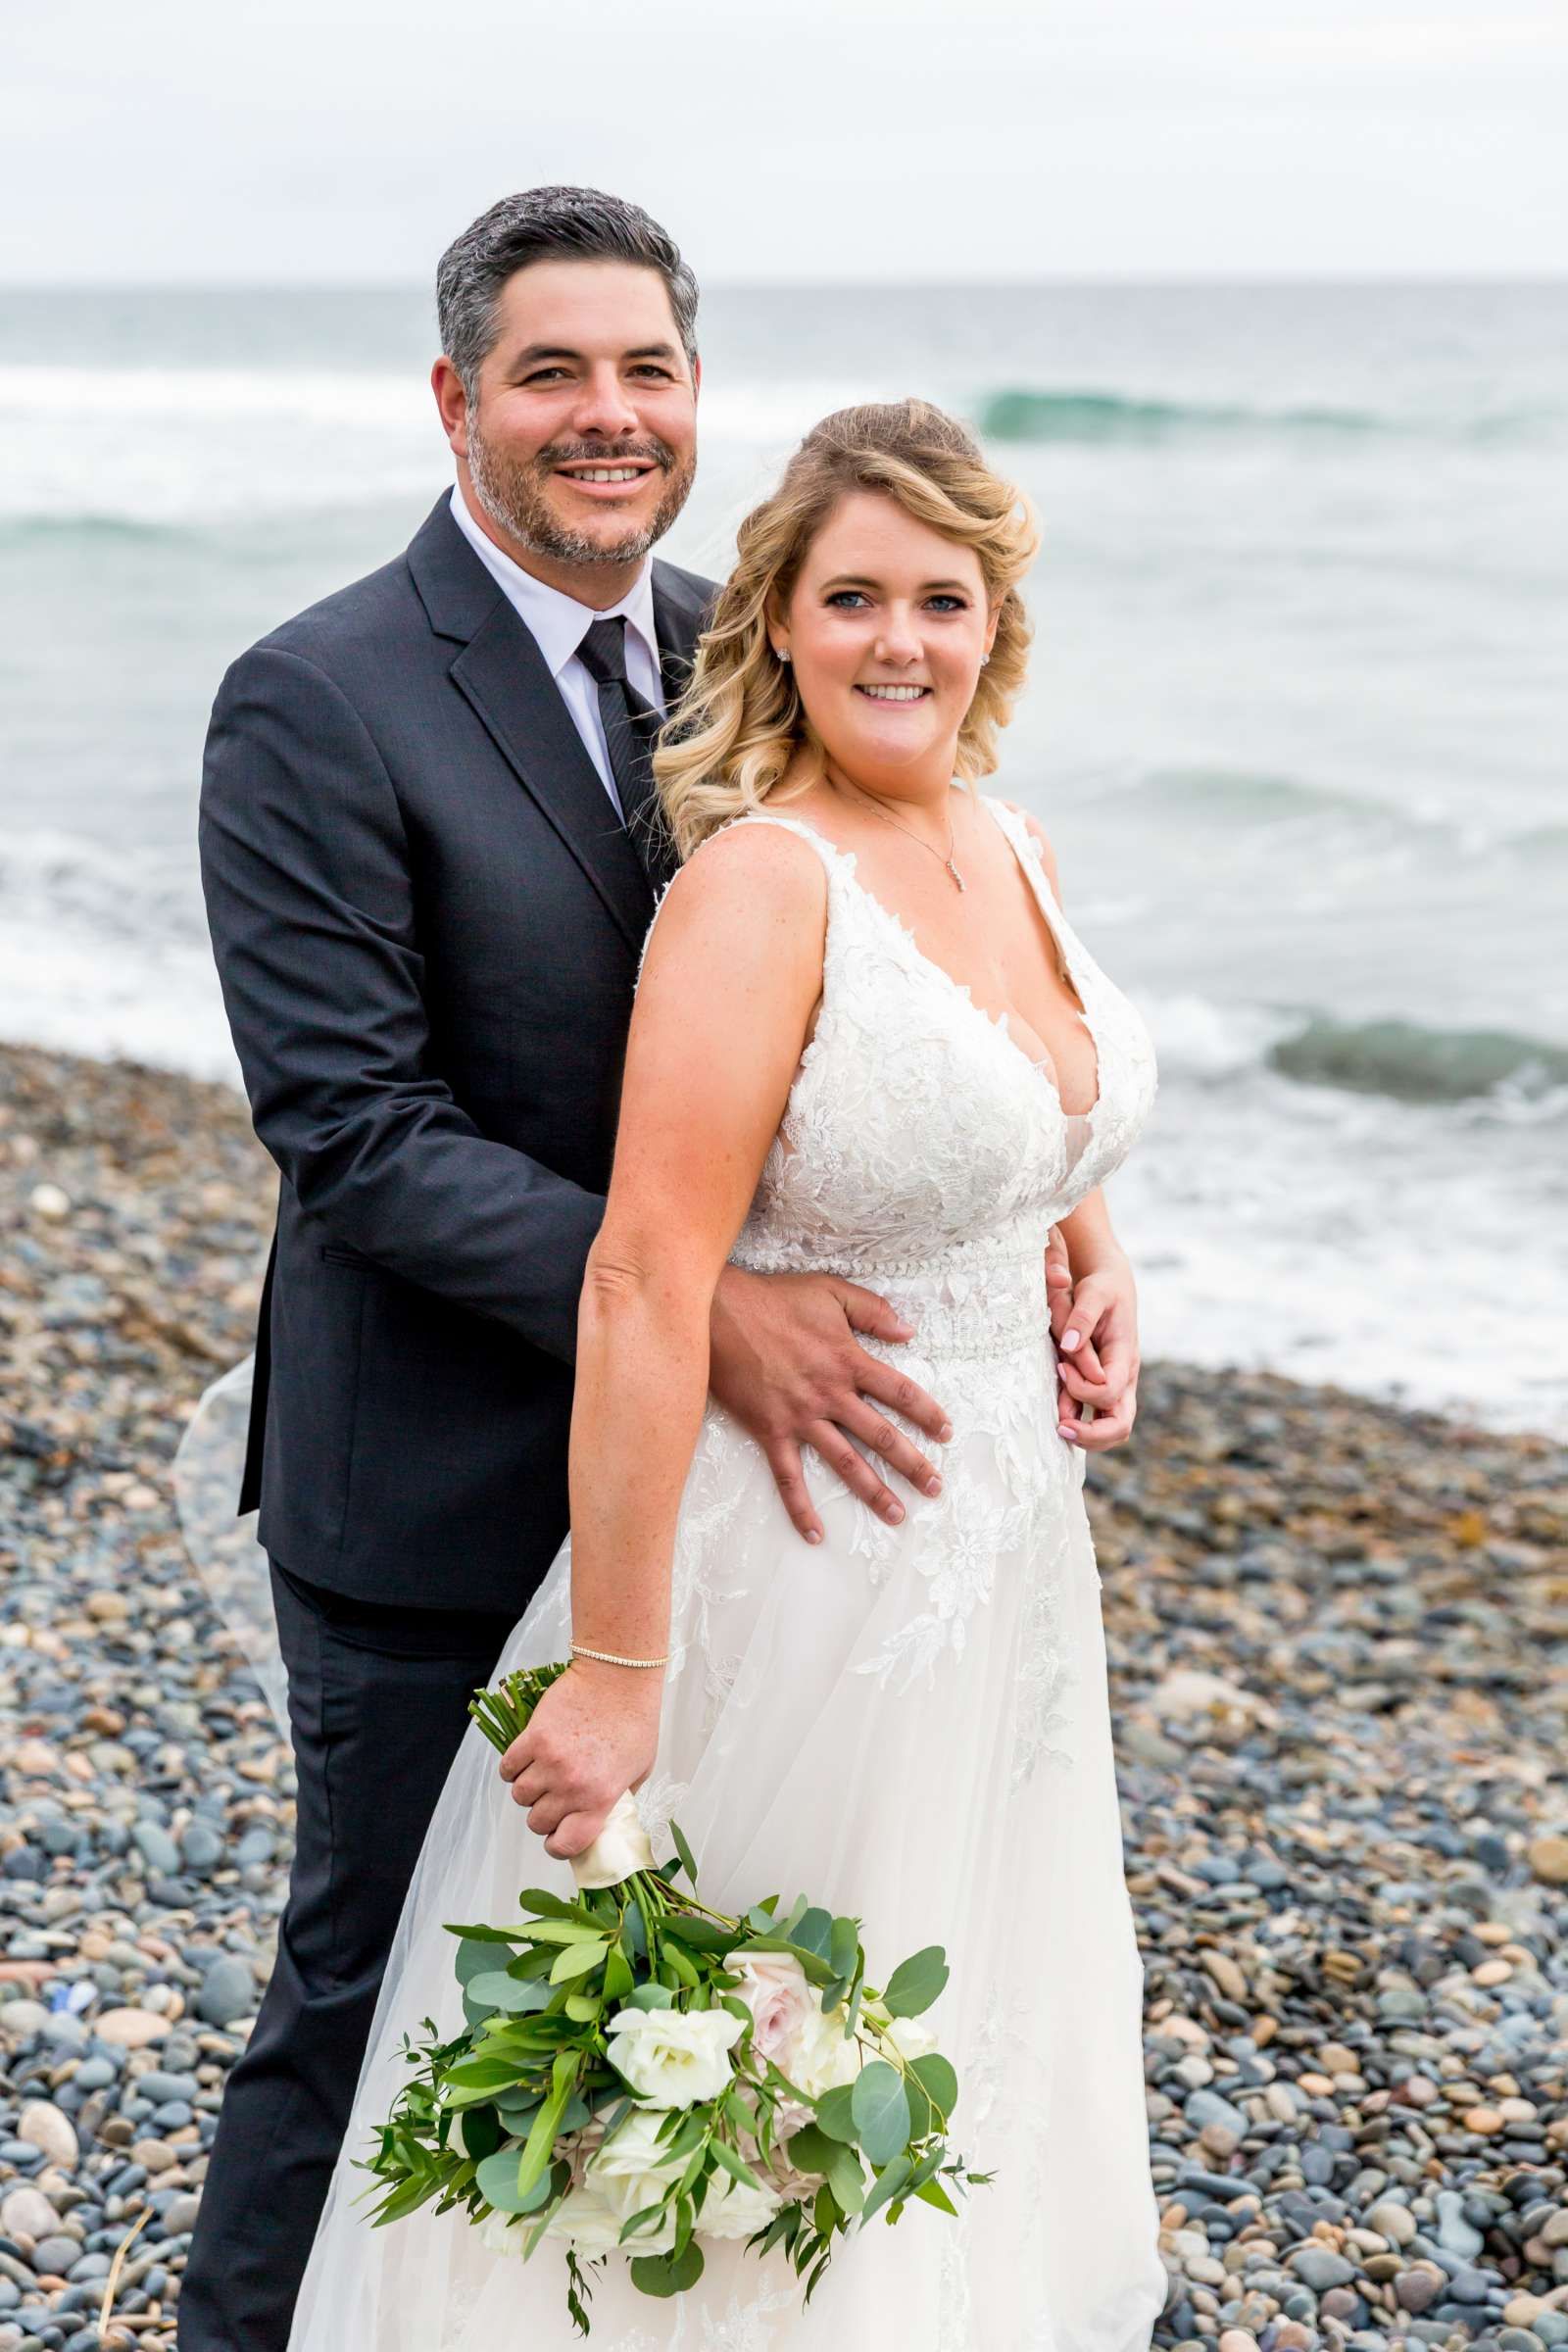 Cape Rey Carlsbad, A Hilton Resort Wedding, Michelle and Justin Wedding Photo #26 by True Photography